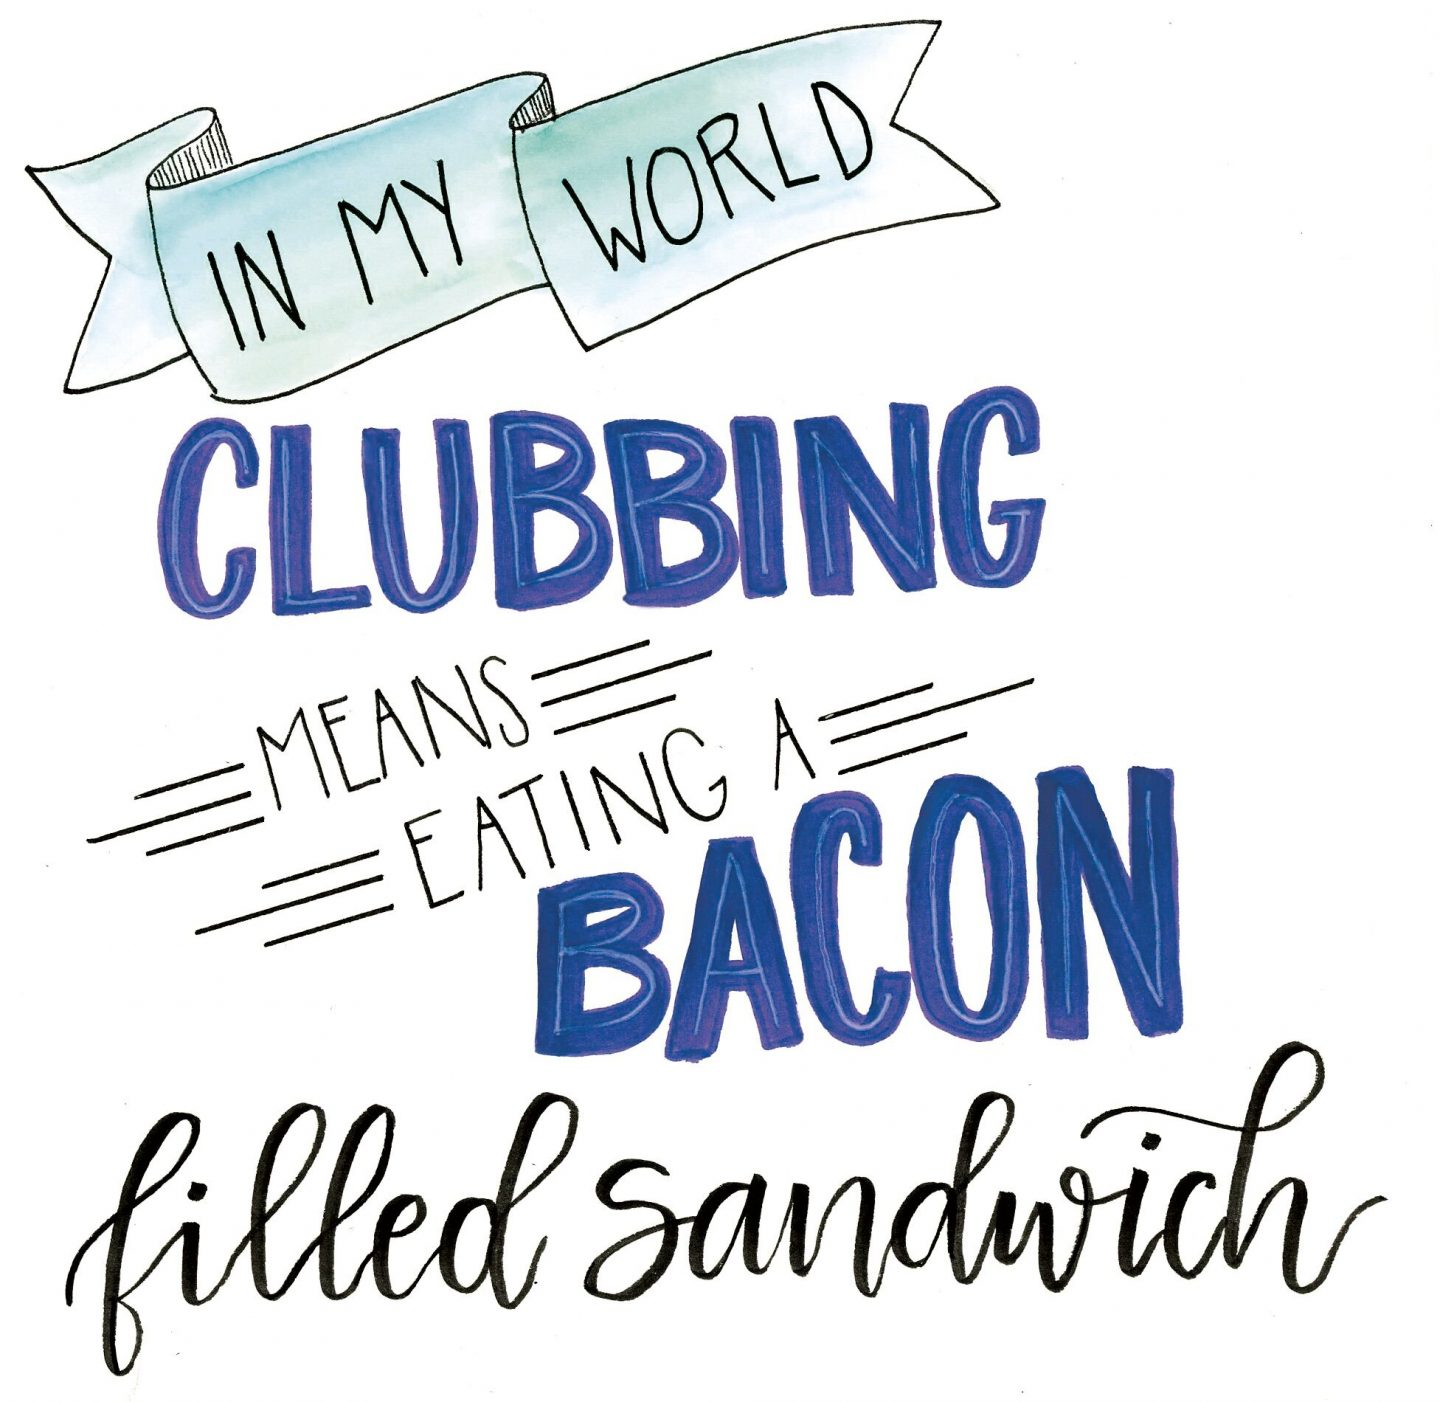 Funny handlettered quote about bacon from Amy Latta. Come see more in 20 Hand Lettered Quotes, Big SMILES & Fun Finds!